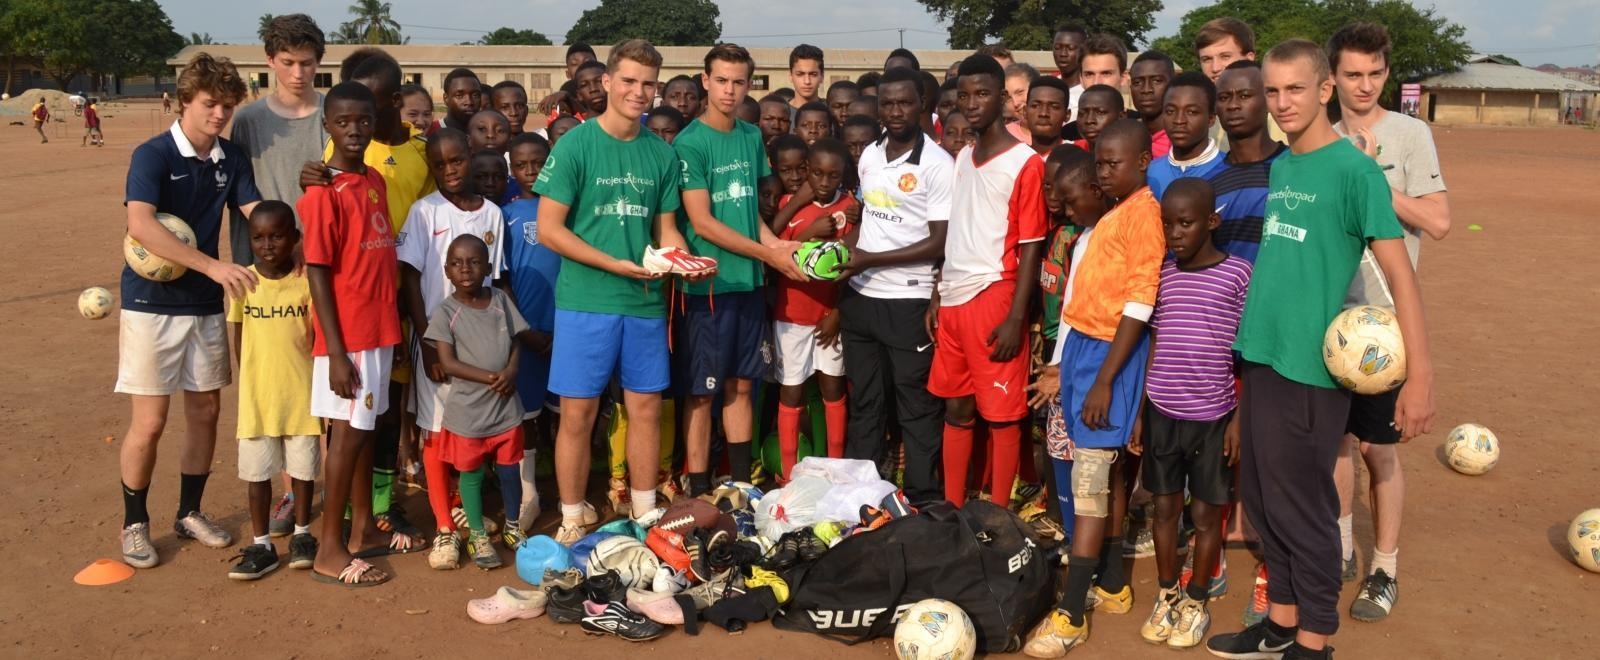 Projects Abroad volunteers taking part in football coaching for high school students in Ghana donate new equipment to a local team.